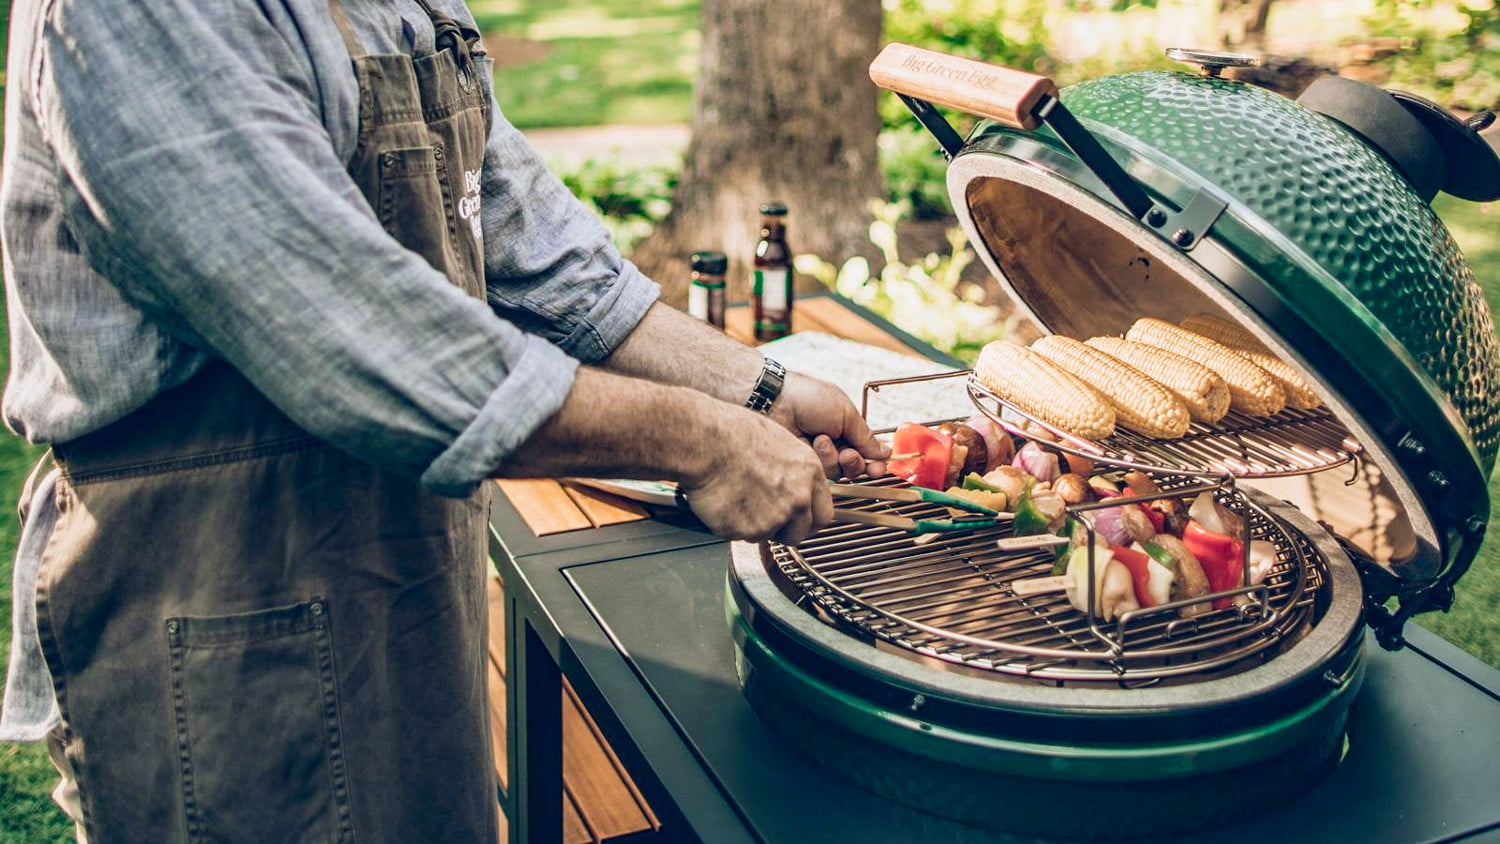 big-green-egg-being-used-to-grill.jpg